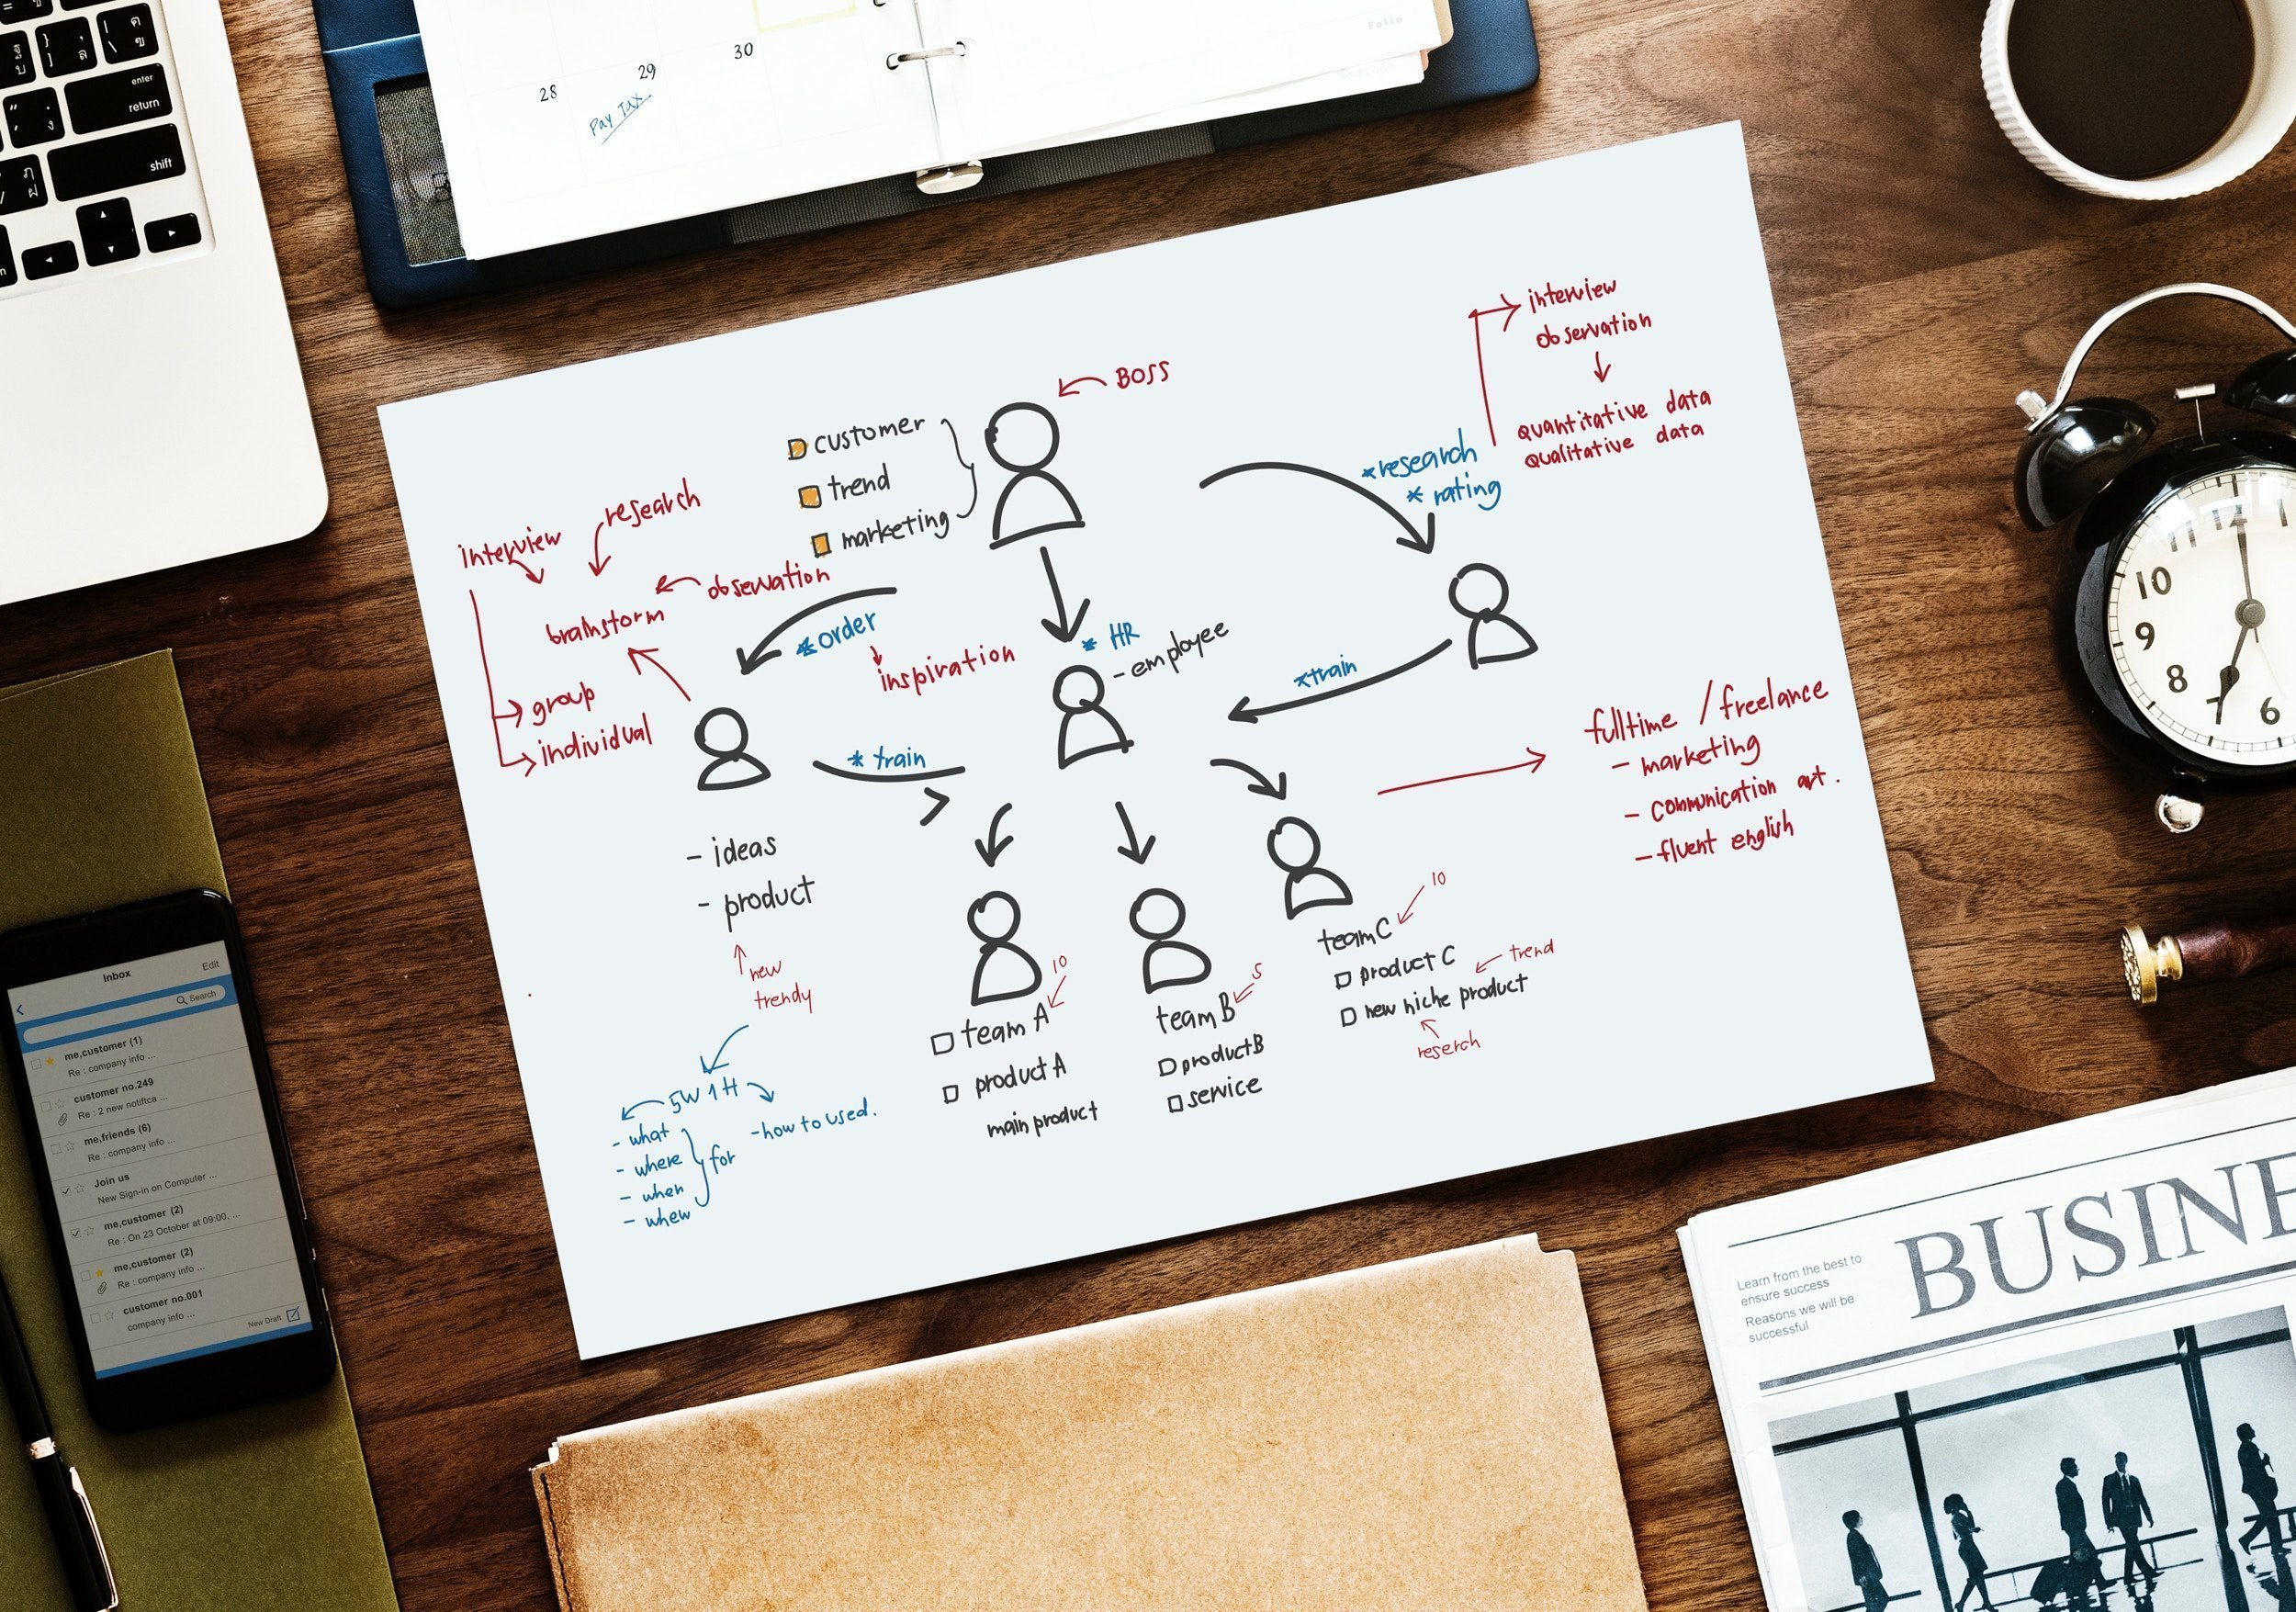 UX research and usability evaluation at designial